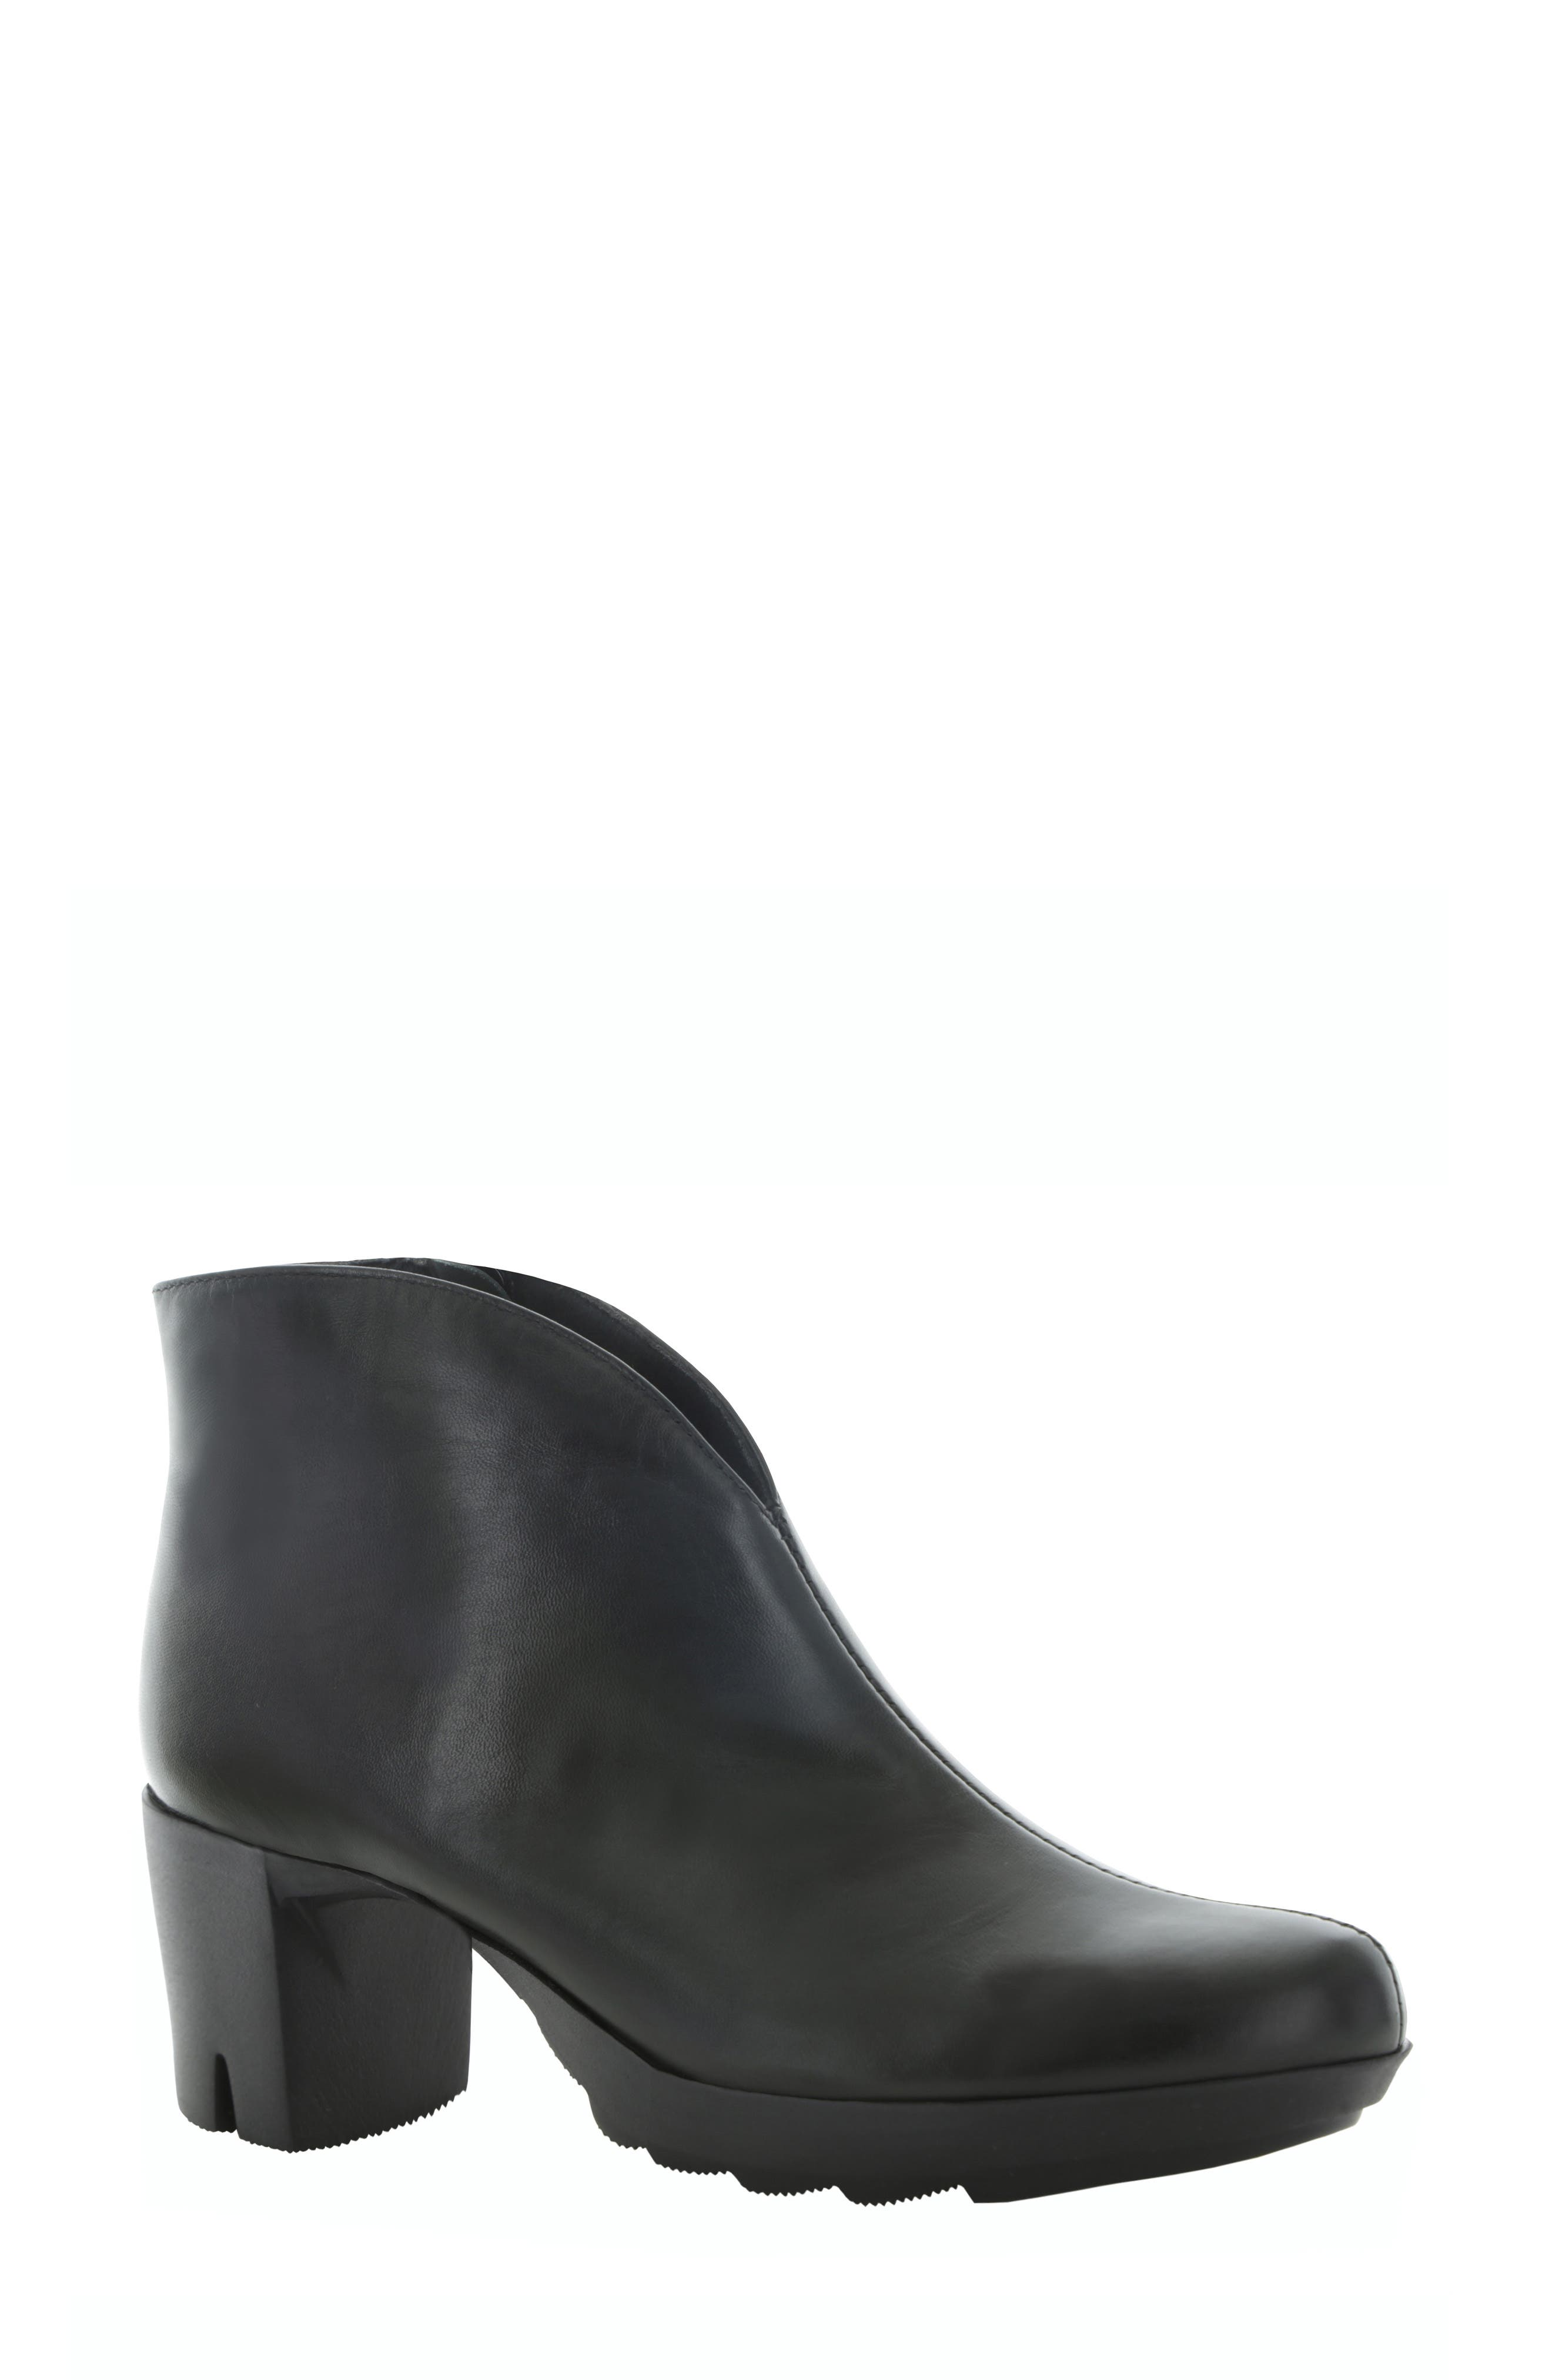 MUNRO, Robynette Bootie, Main thumbnail 1, color, BLACK LEATHER